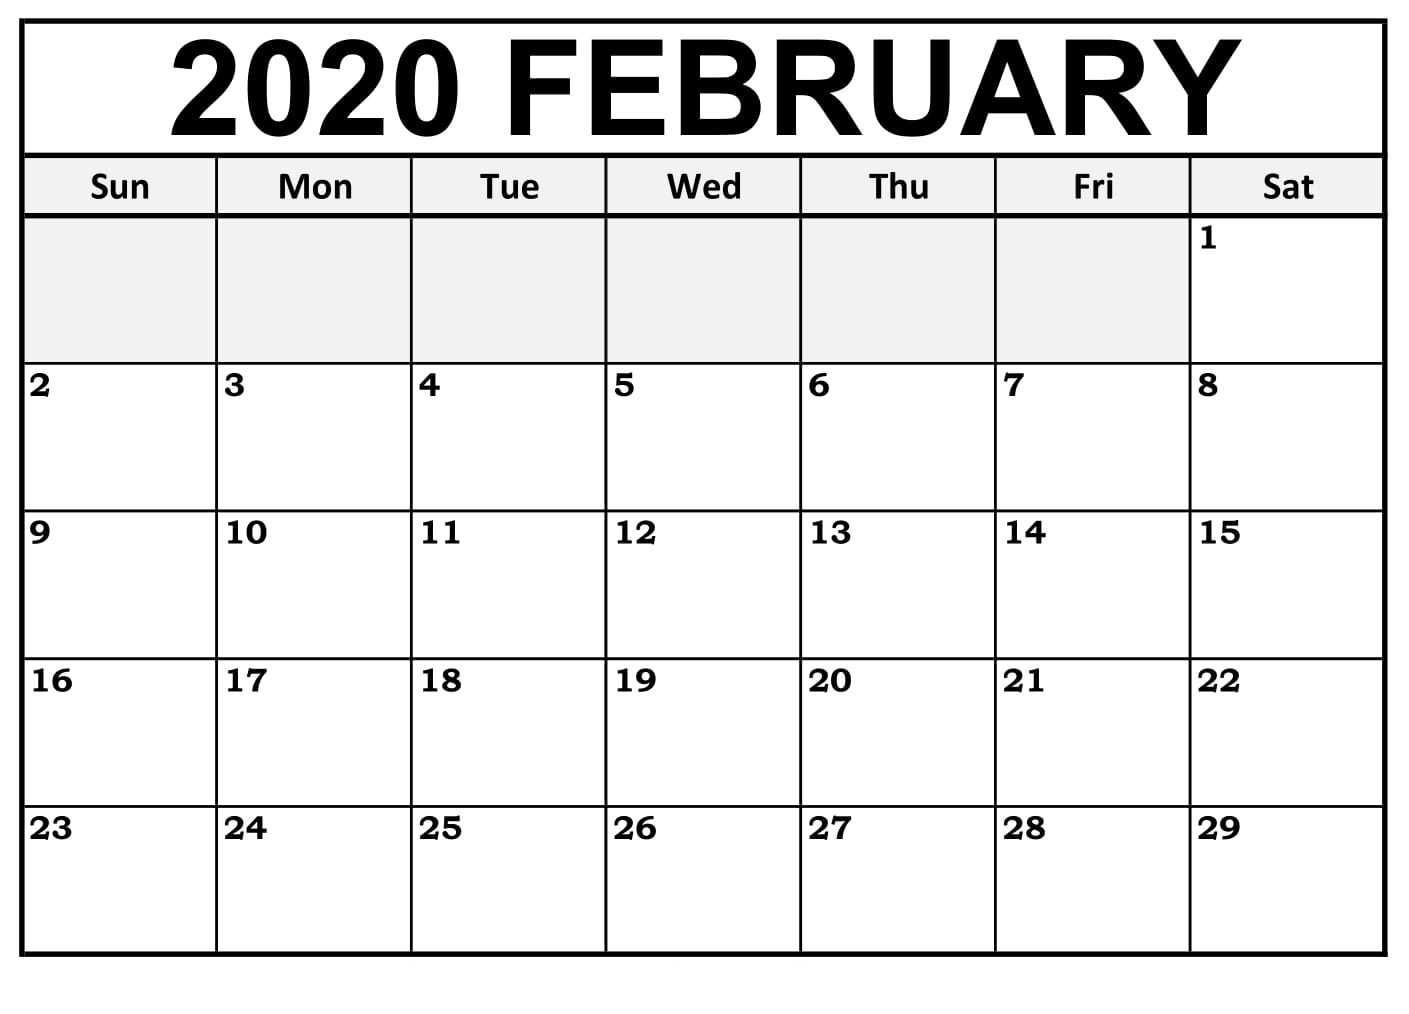 Printable February Calendar For 2020 – Waterproof Paper | 12 within Free Printable Calendar 2020 Waterproof